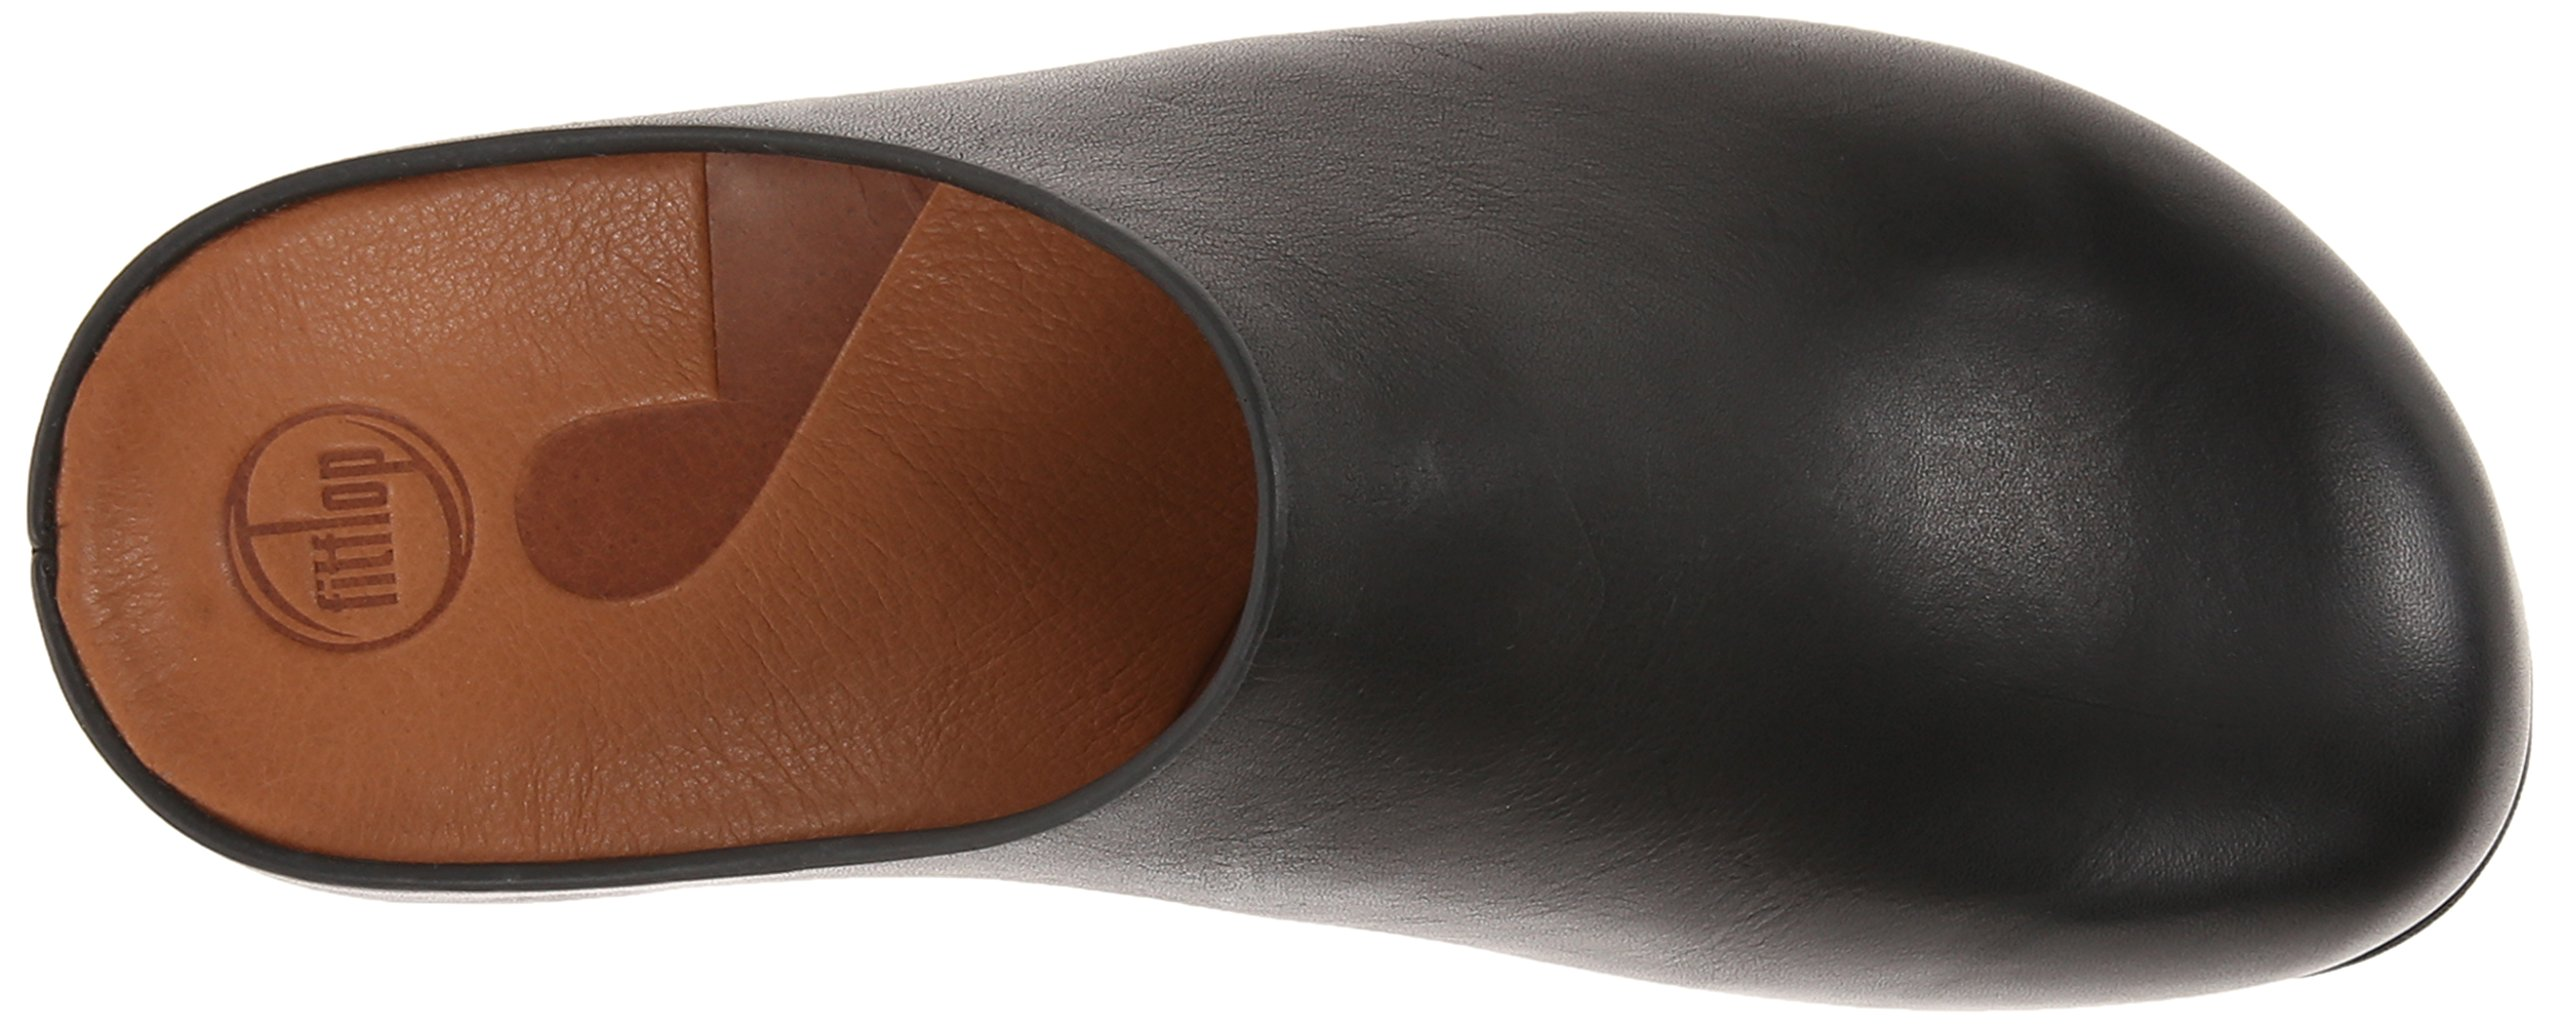 FitFlop Women's Shuv Leather Clog,Black,5 M US by FitFlop (Image #8)